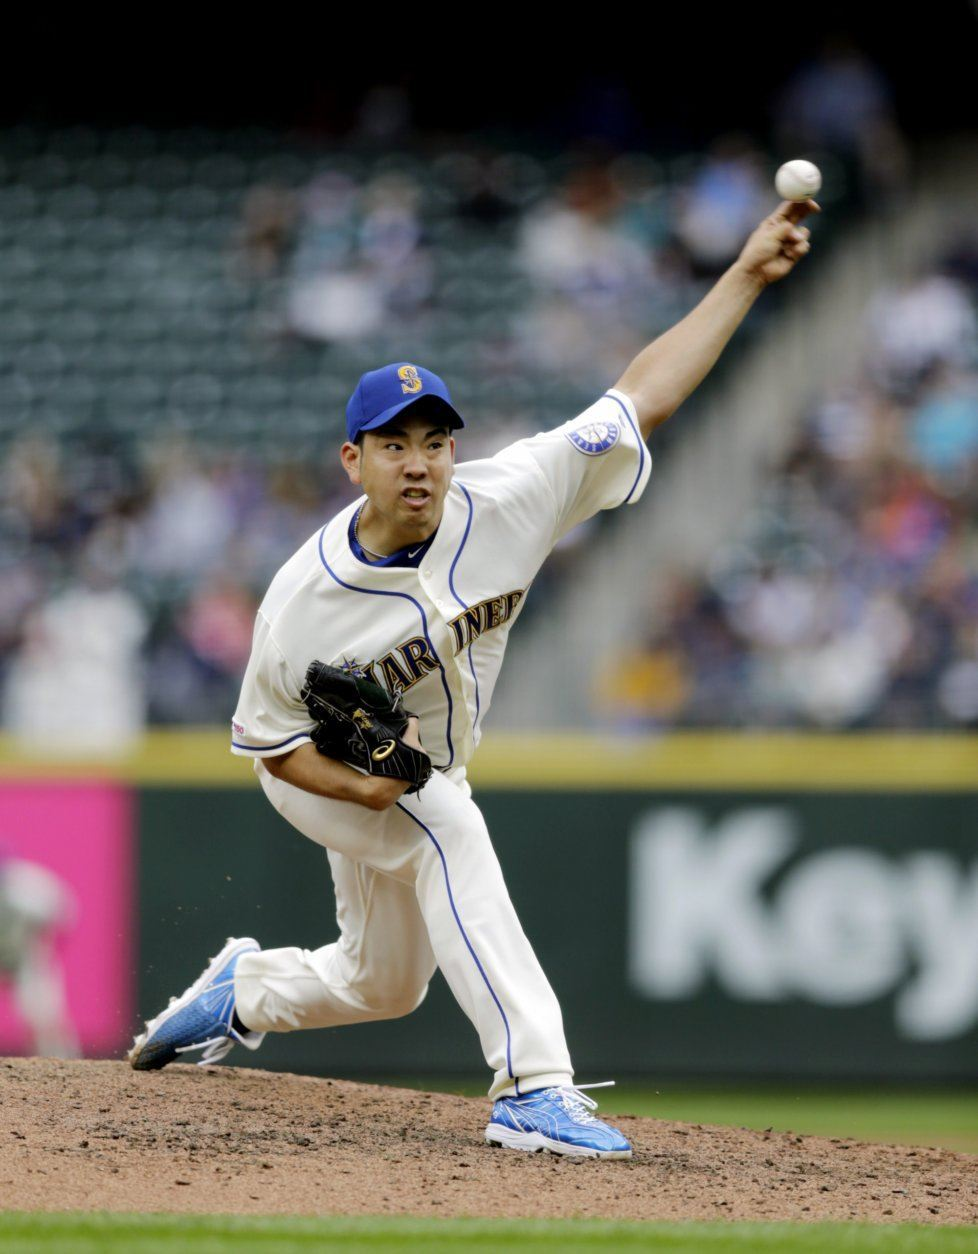 Seattle Mariners starting pitcher Yusei Kikuchi works against the Baltimore Orioles during the fifth inning of a baseball game, Sunday, June 23, 2019, in Seattle. (AP Photo/John Froschauer)